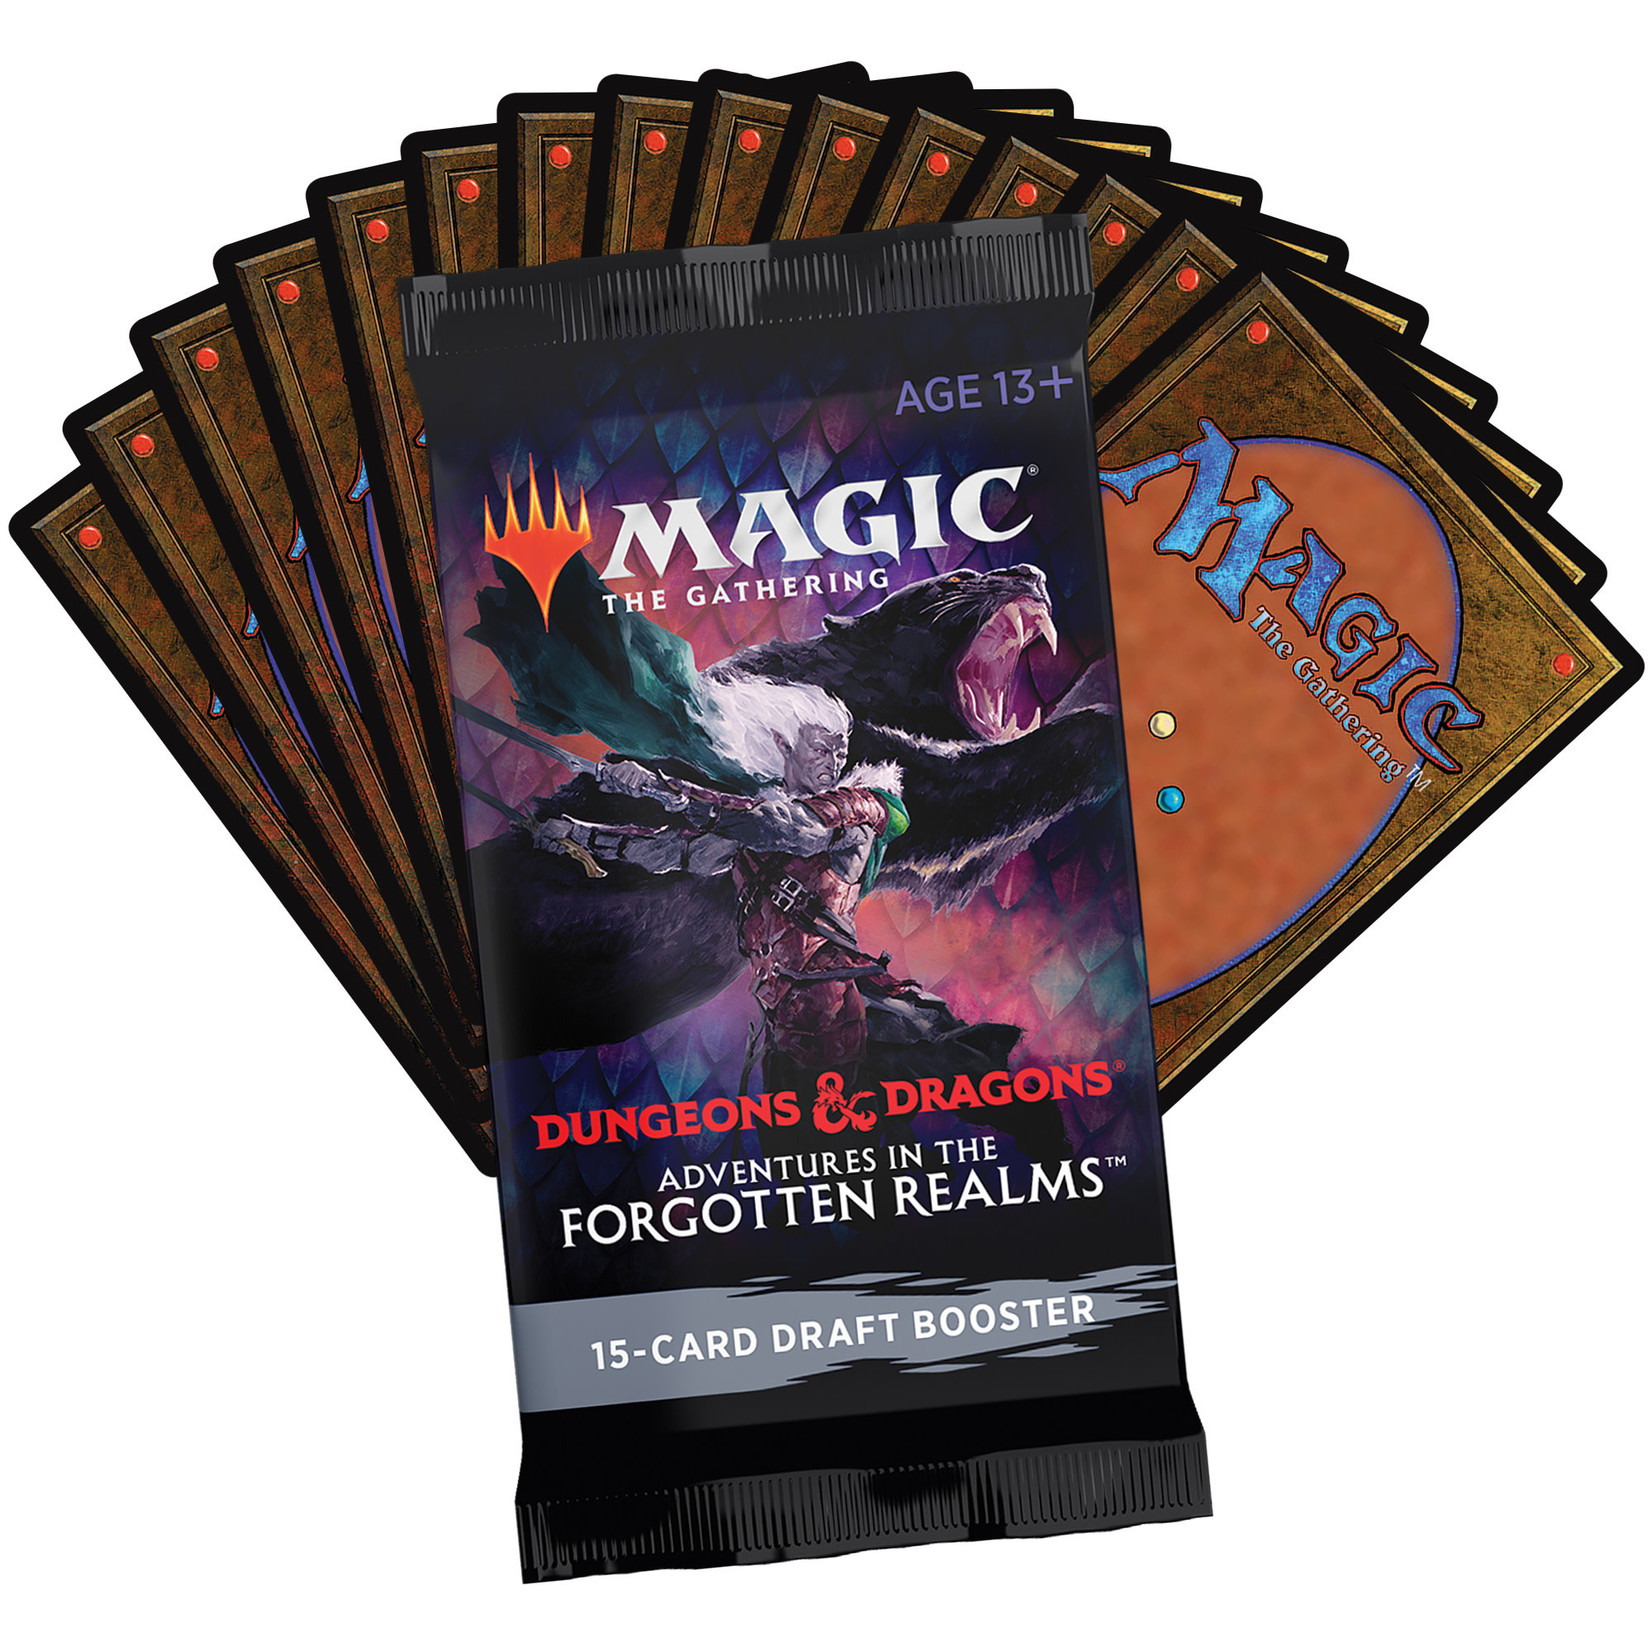 Magic: The Gathering Magic: The Gathering - Adventures in the Forgotten Realms Draft Booster Pack